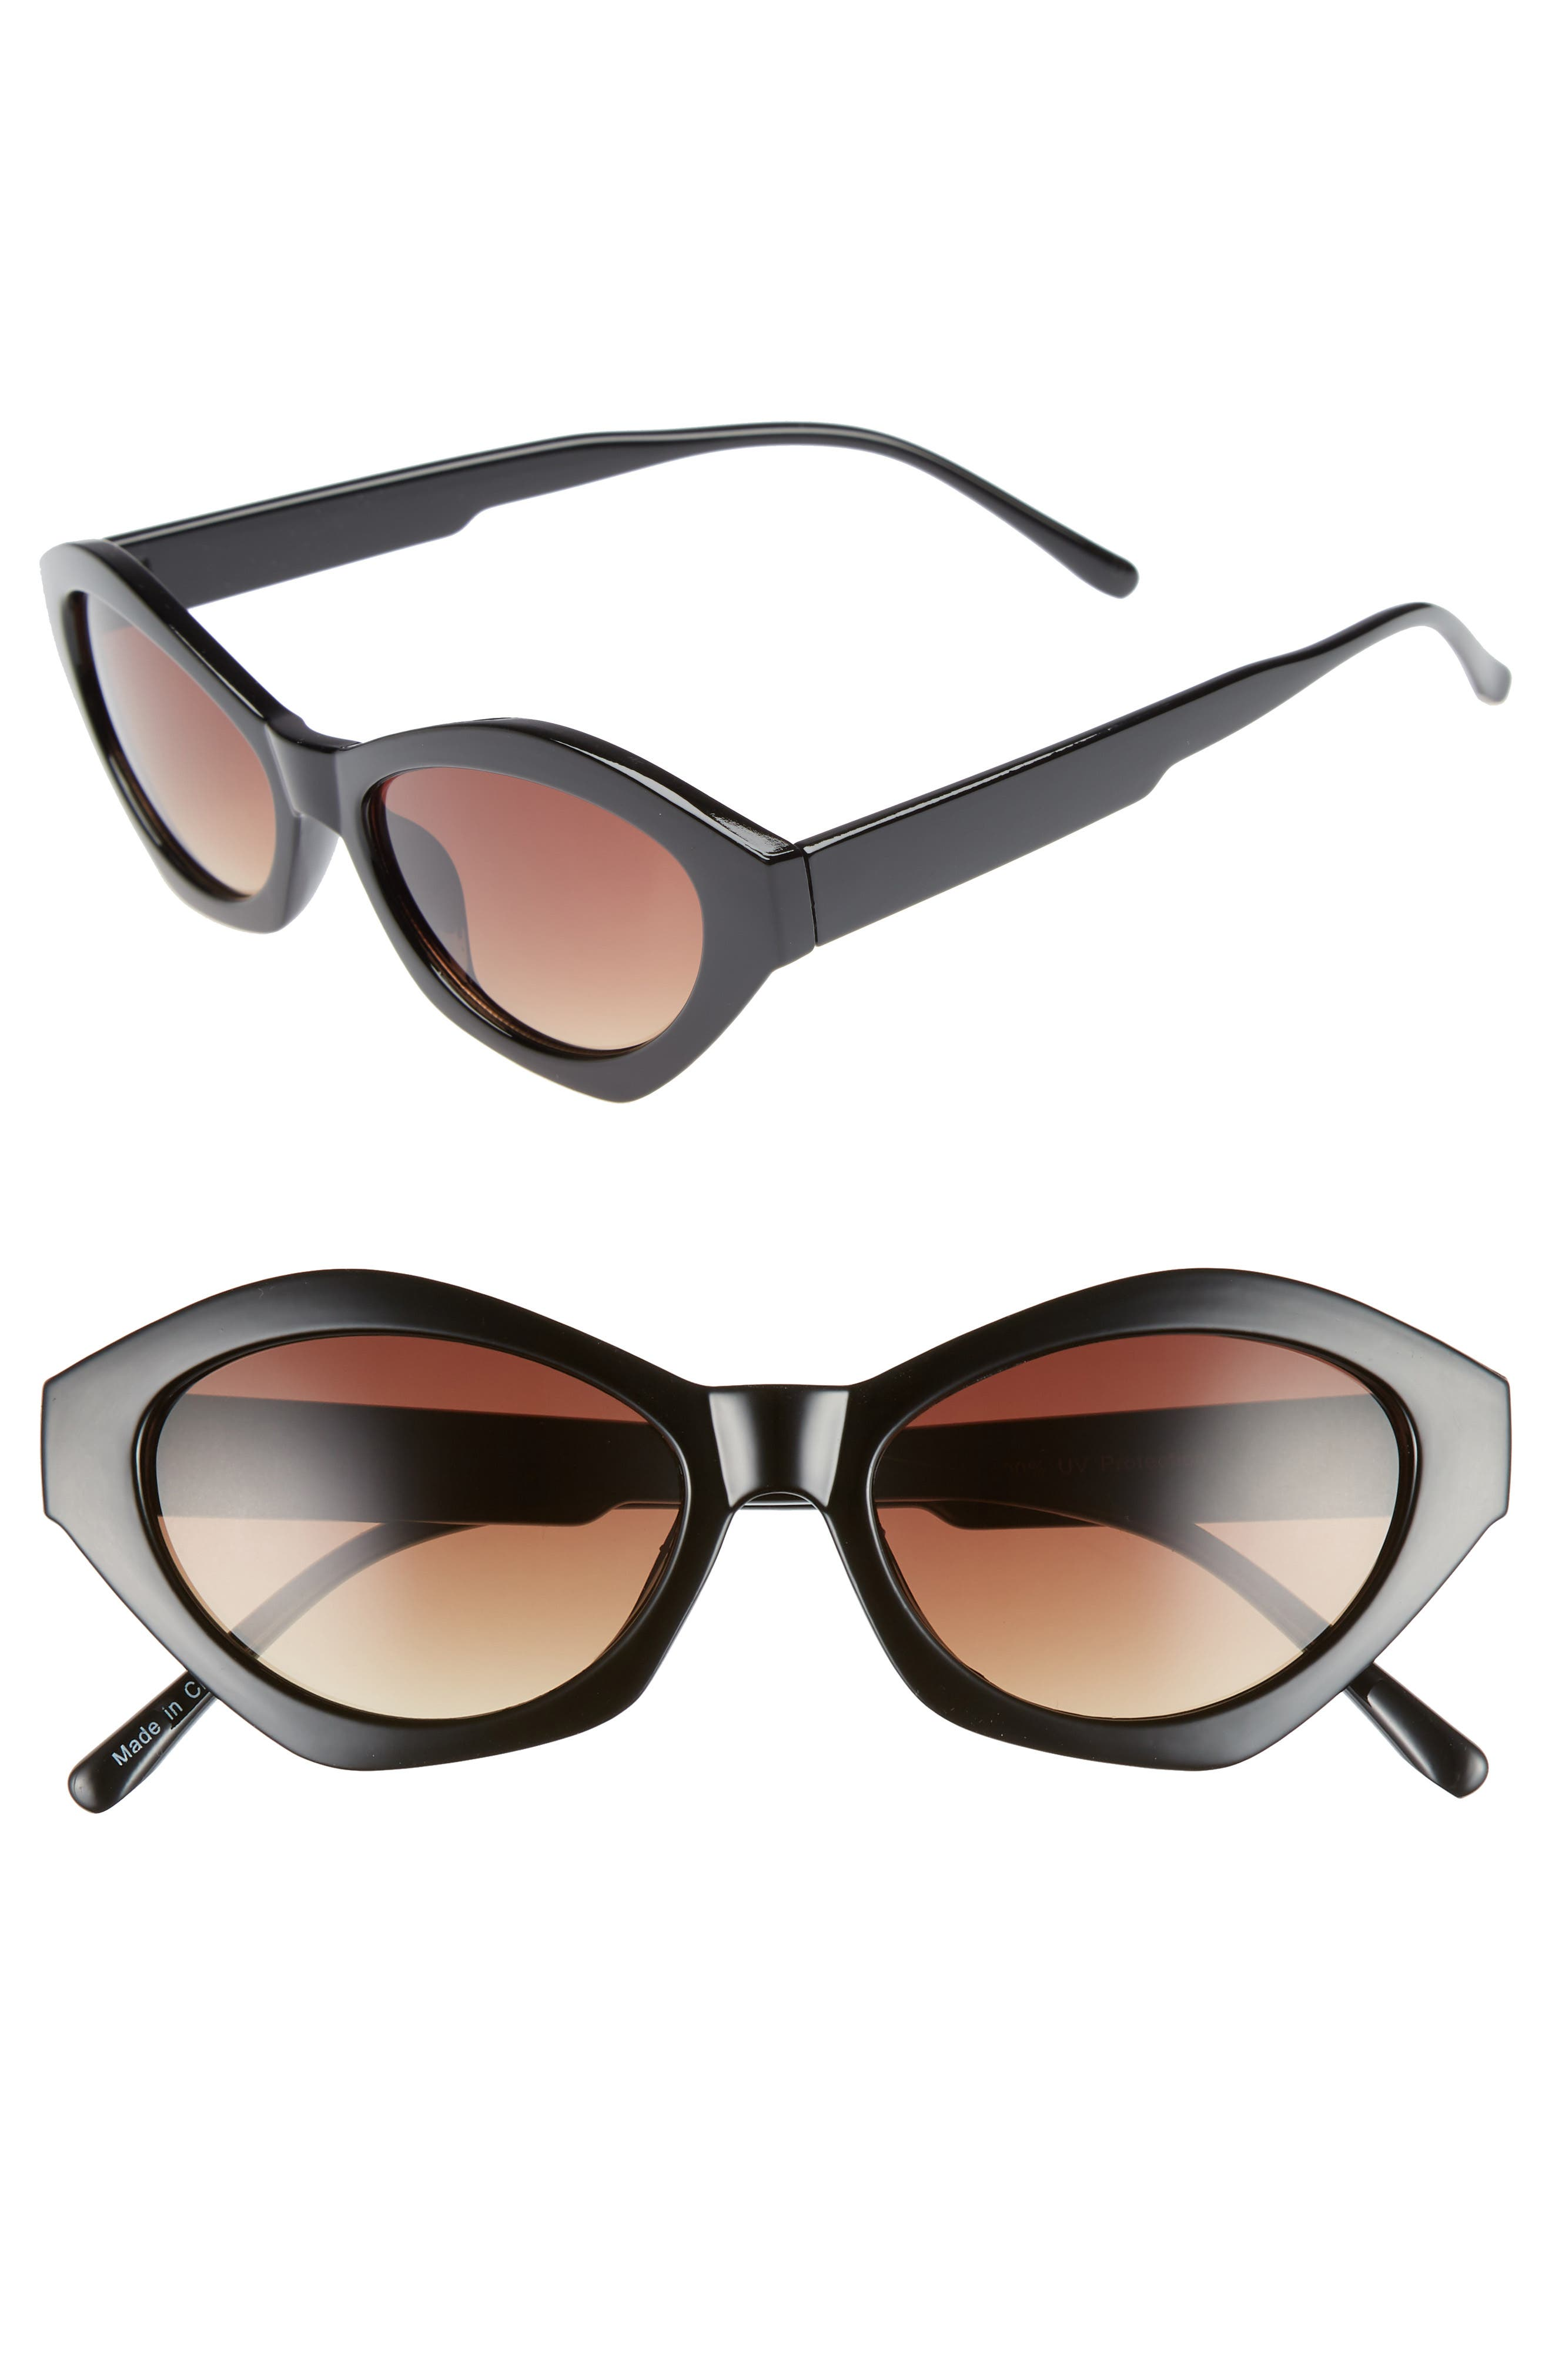 58mm Curved Cat Eye Sunglasses,                             Main thumbnail 1, color,                             001